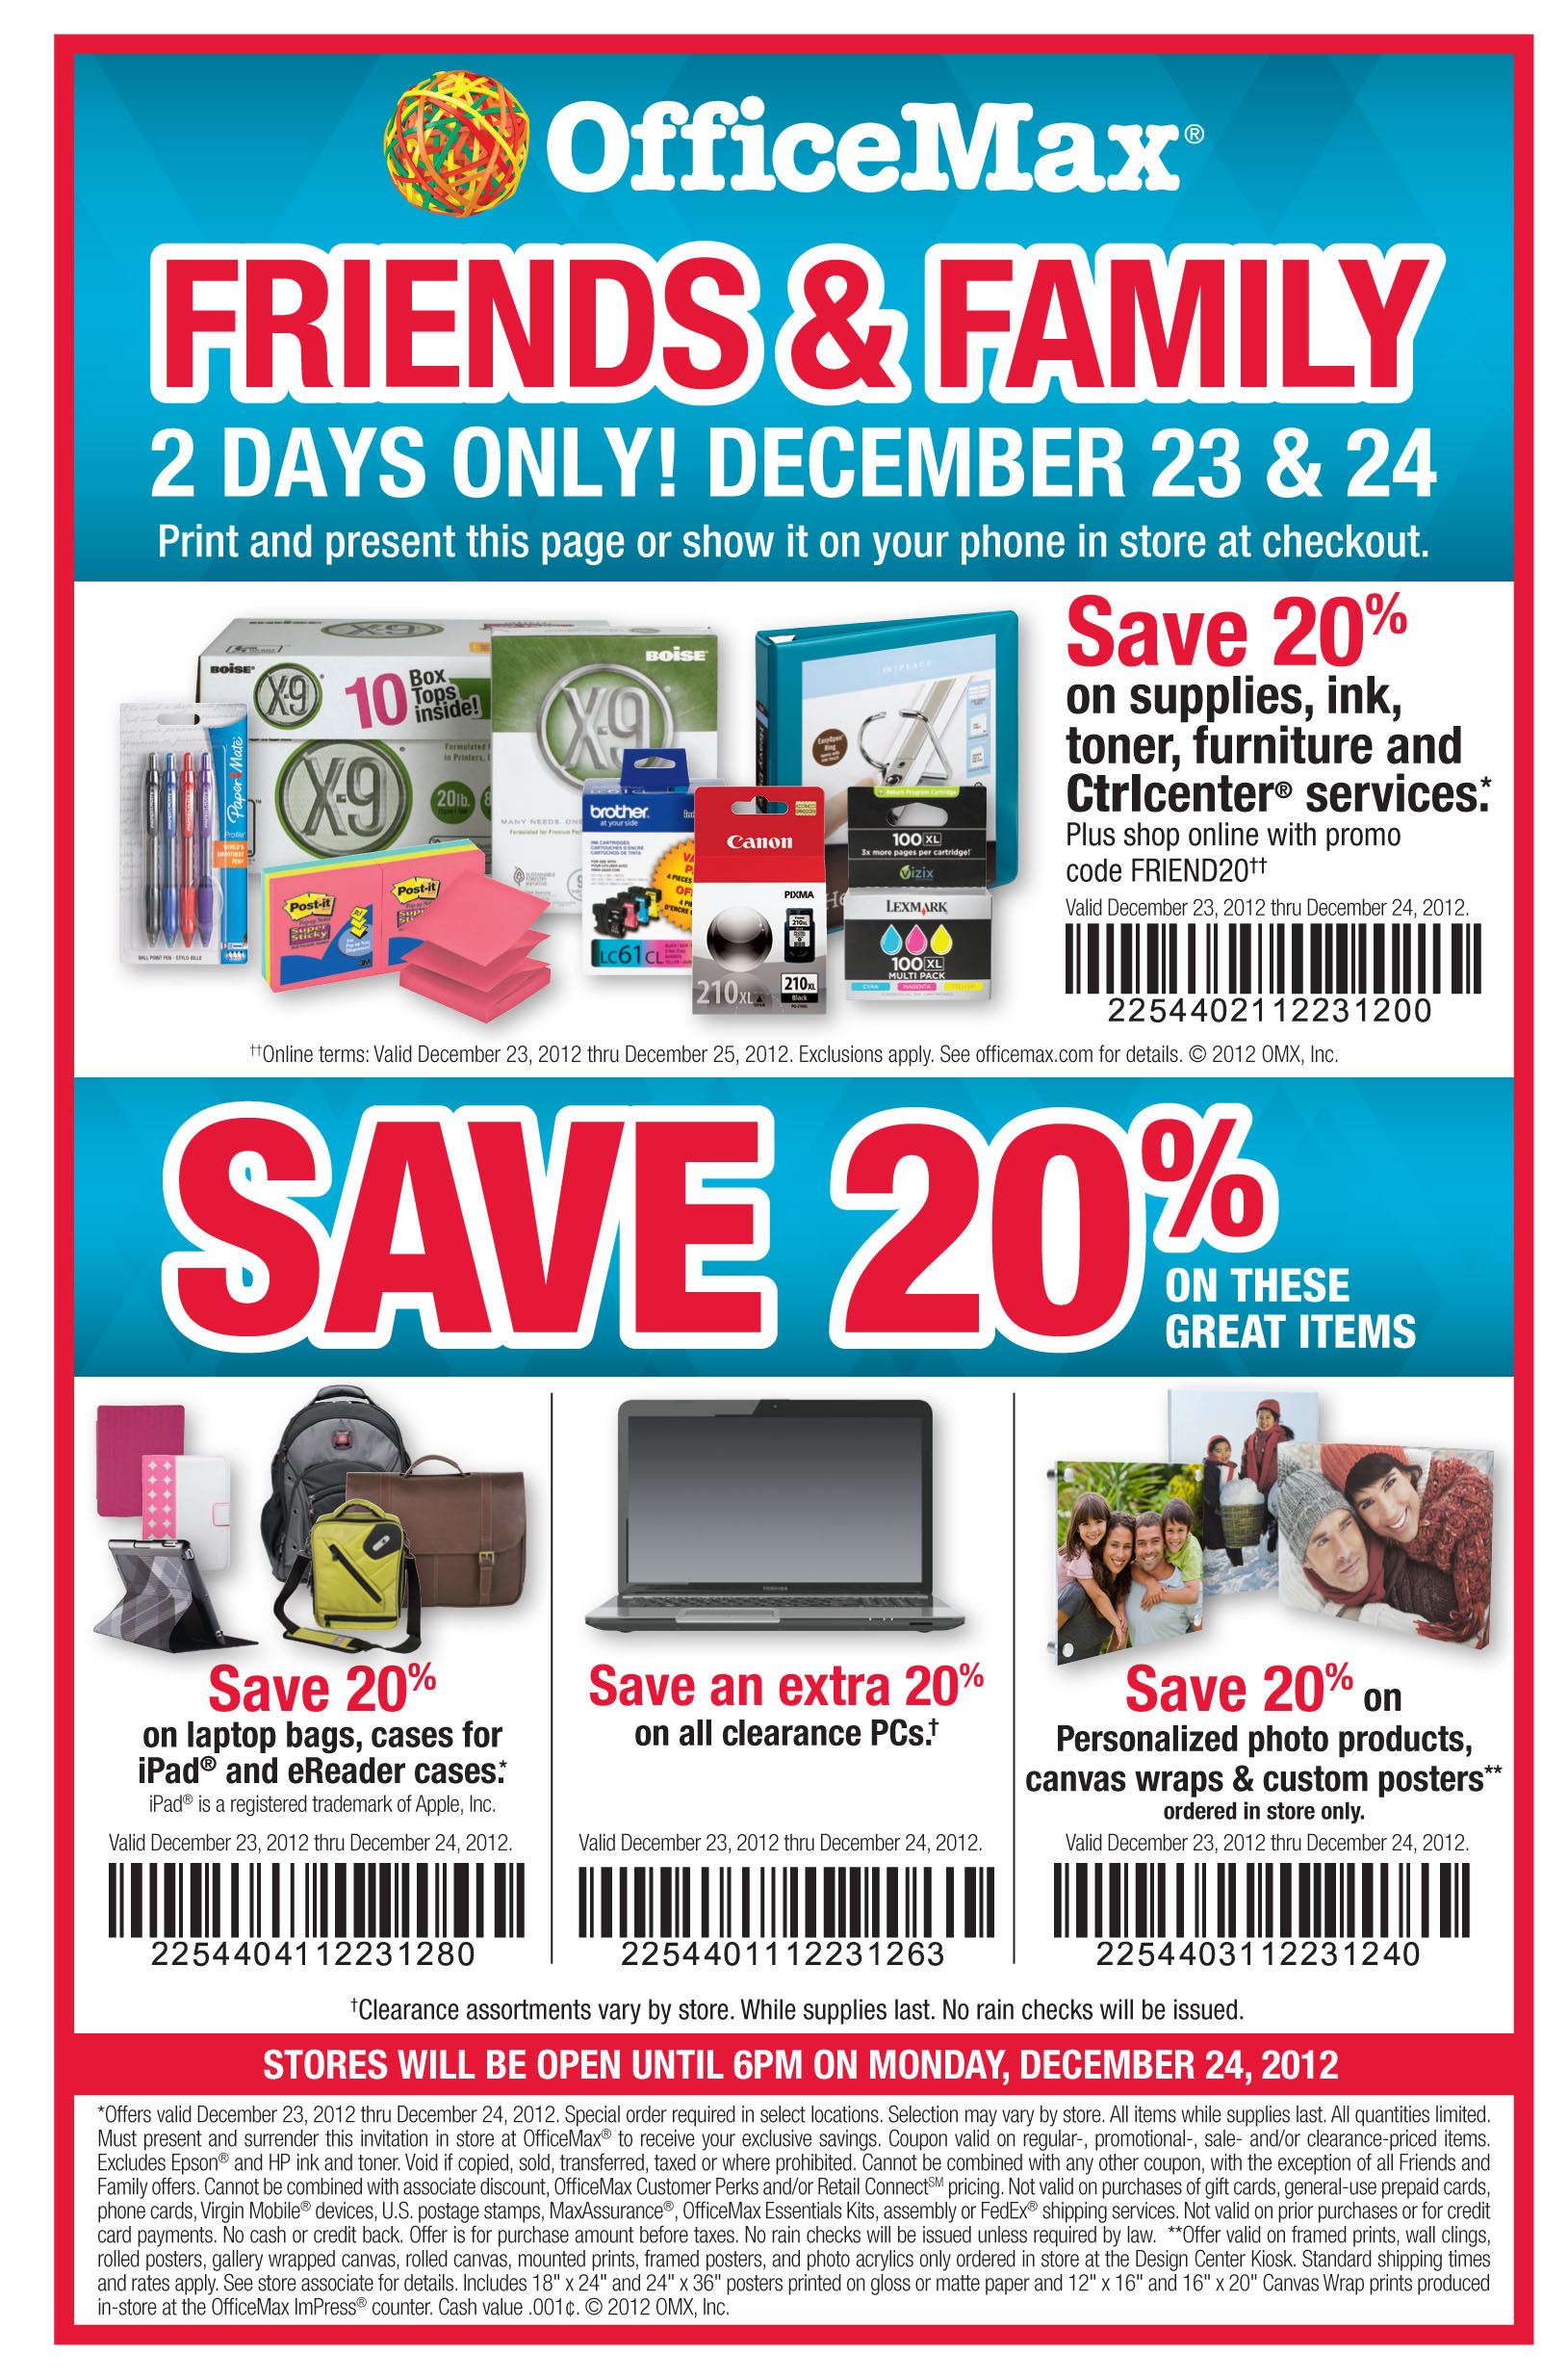 Office Max Furniture >> OfficeMax Save 20% Two Days only! | Print Coupon King